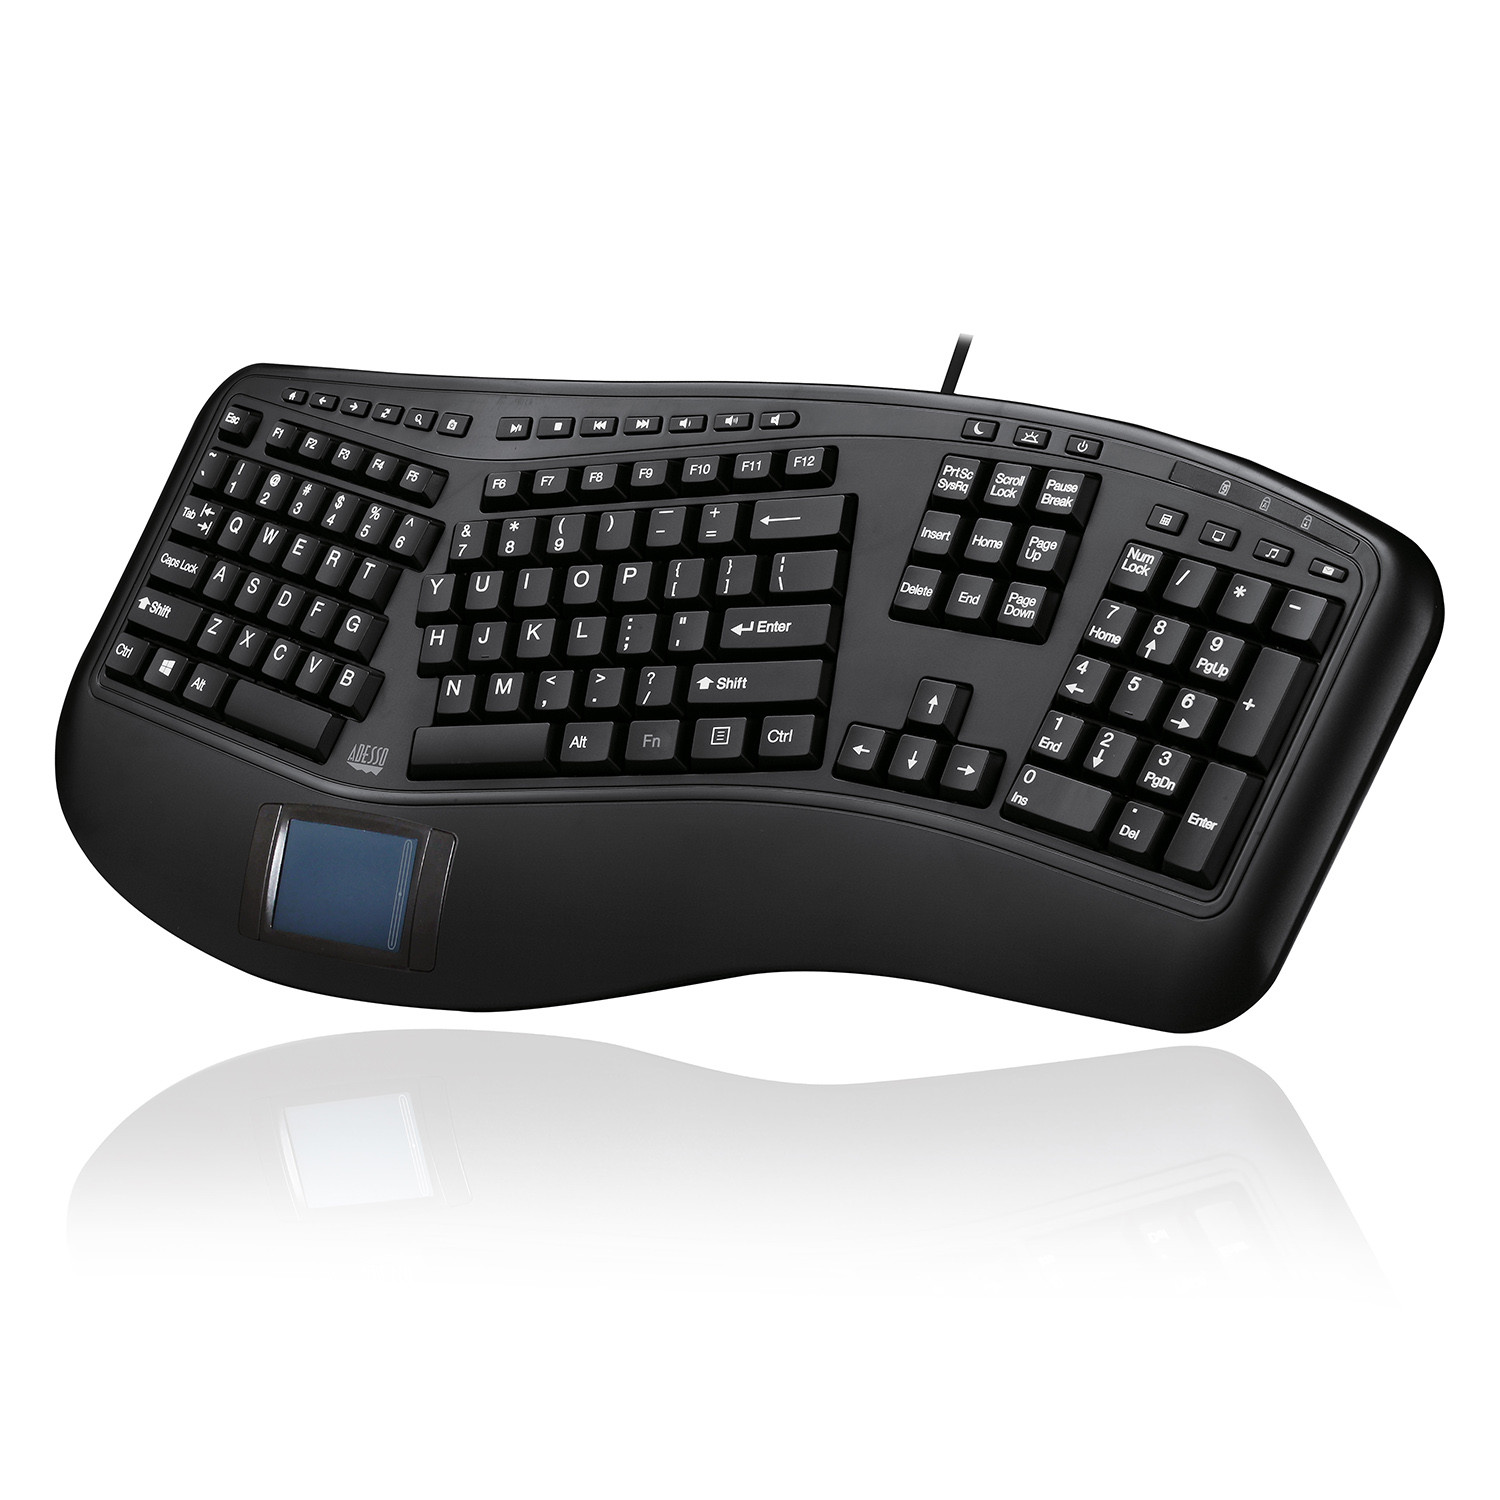 Adesso Tru-Form 450 - Ergonomic Touchpad Keyboard